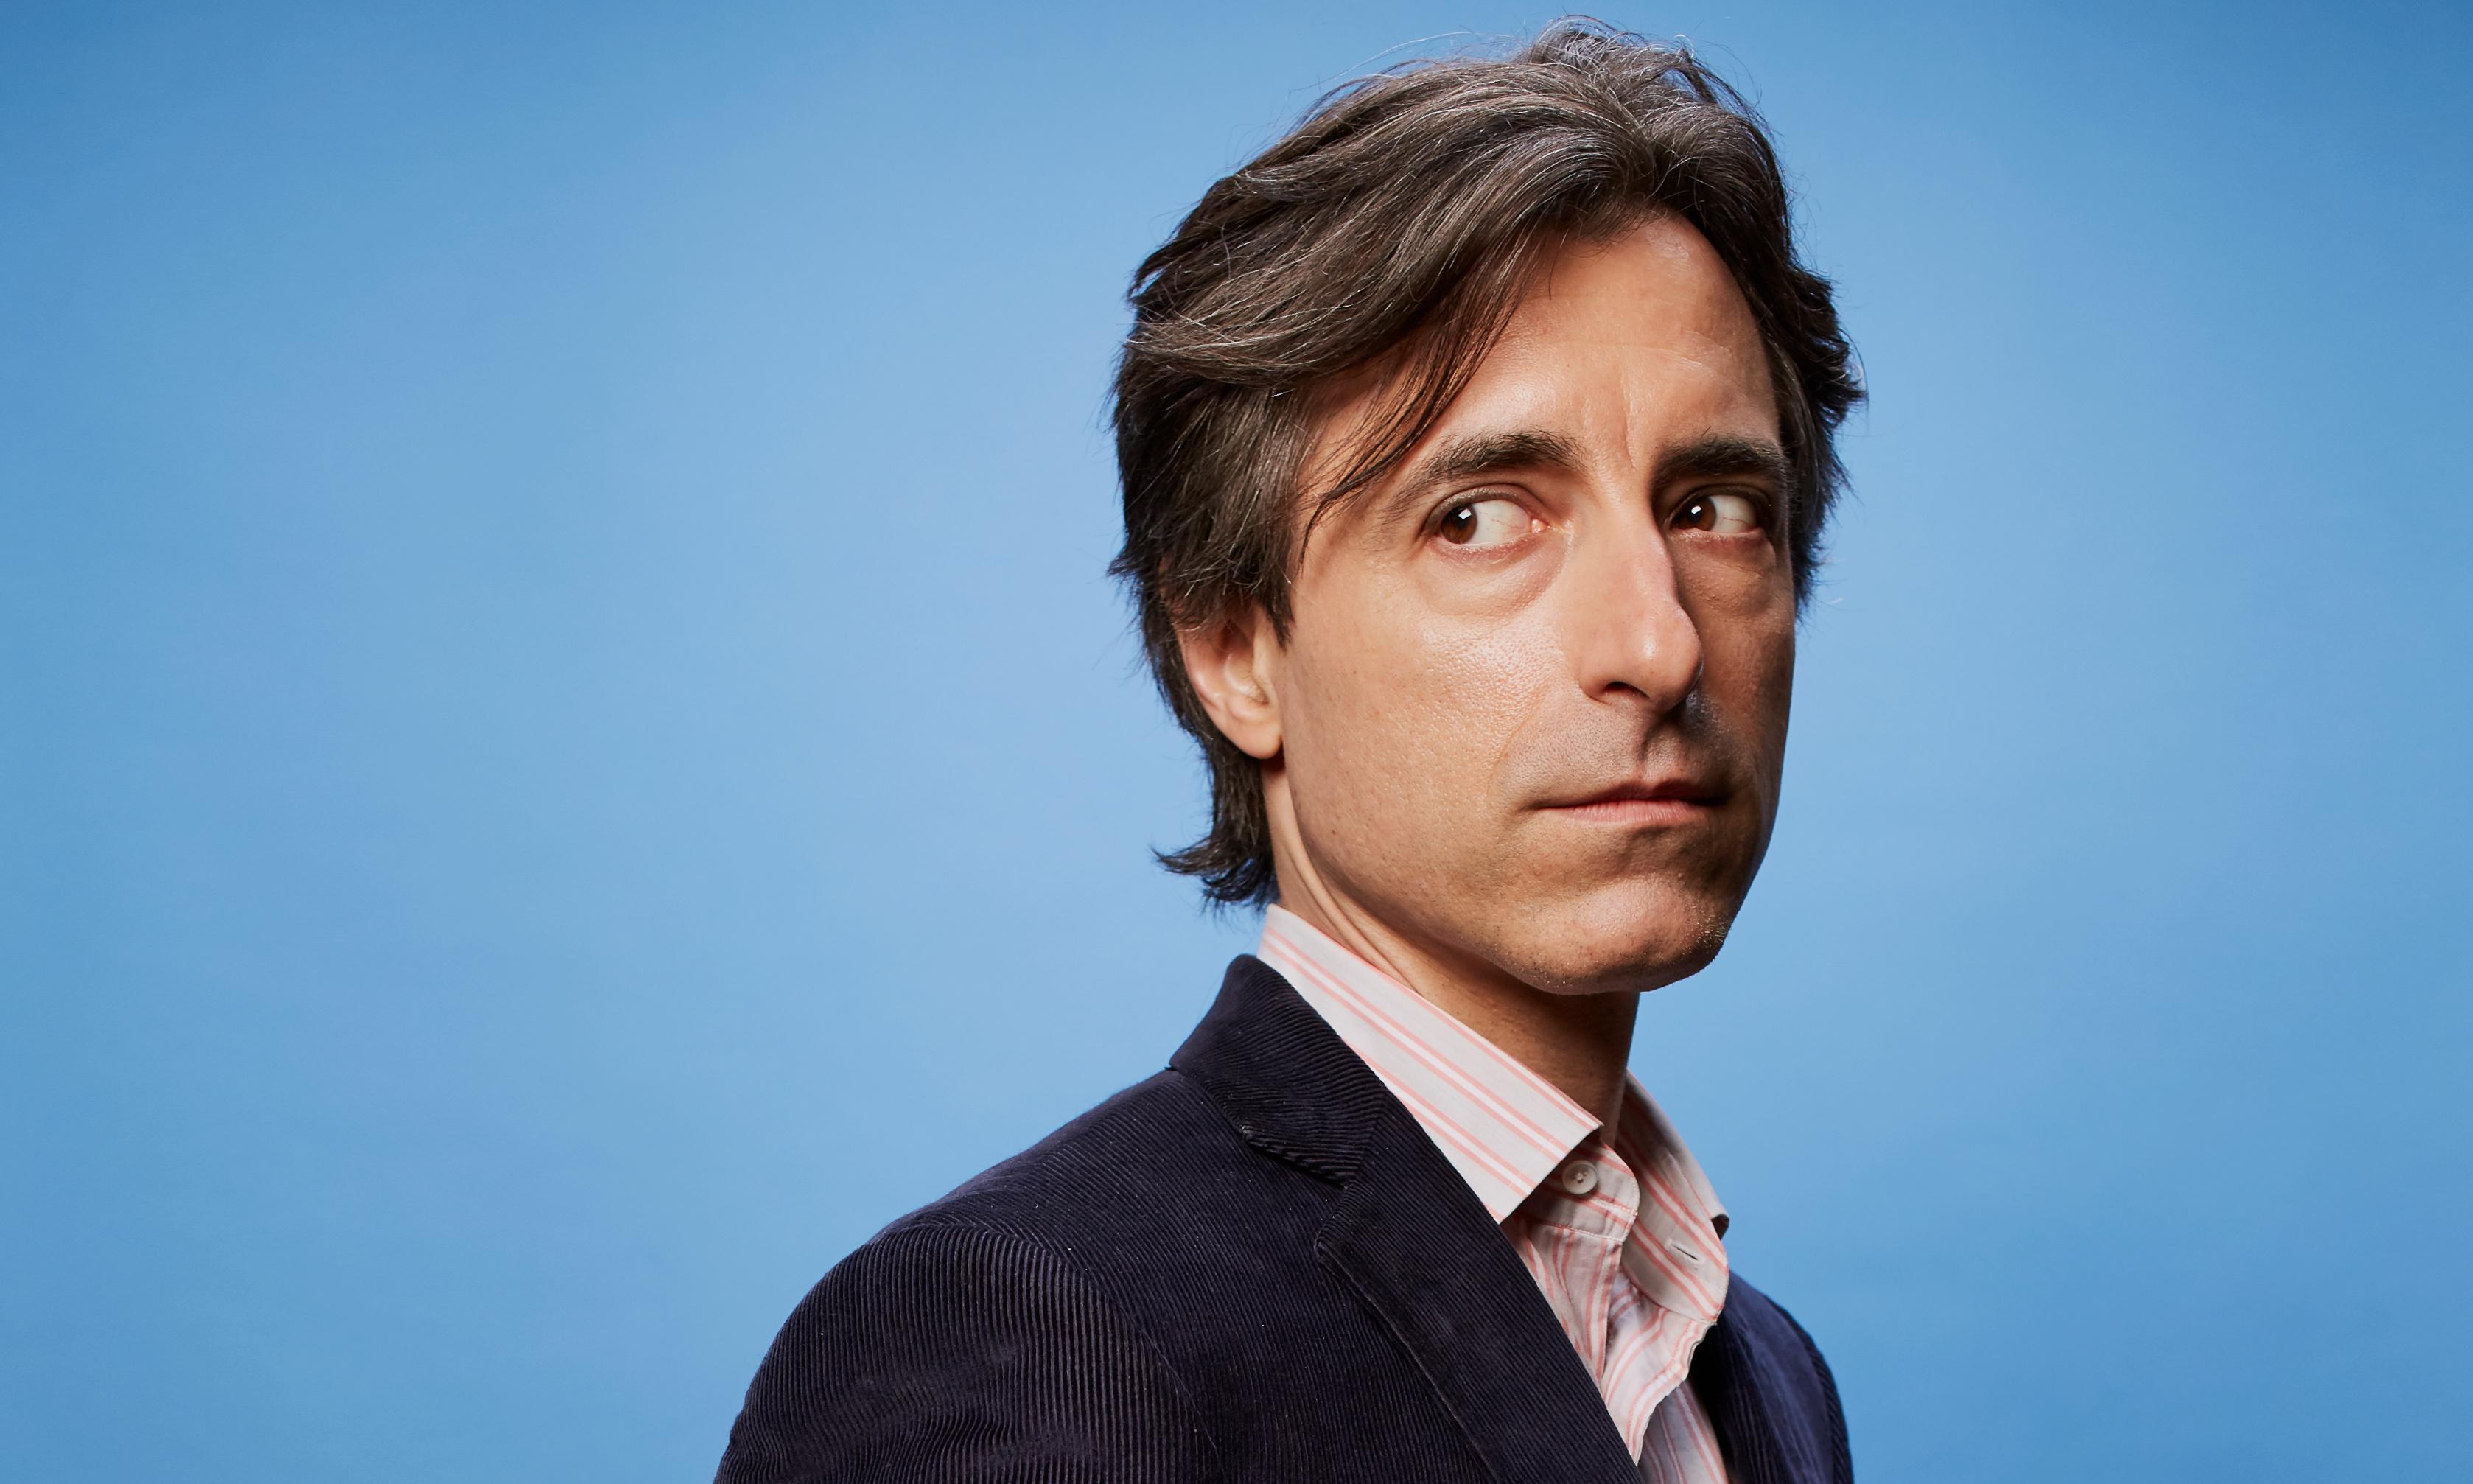 Noah Baumbach: 'Marriage Story illustrates that to take sides is folly'